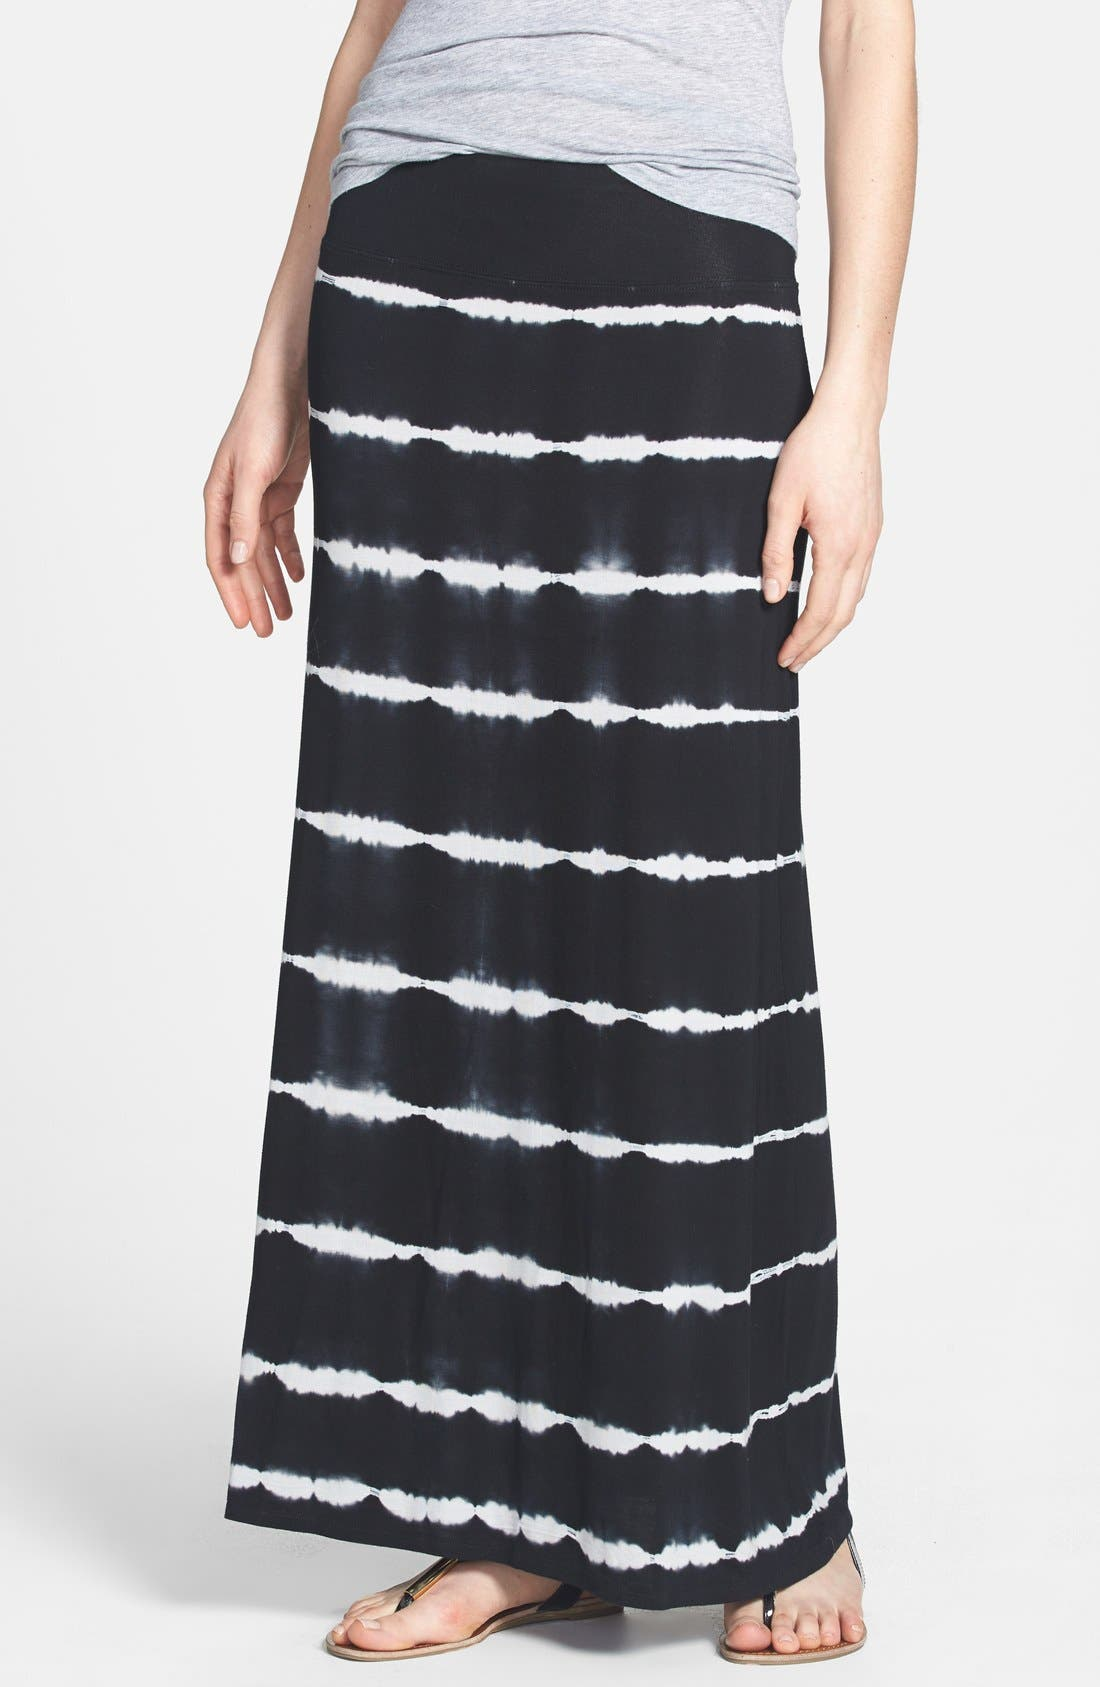 Alternate Image 1 Selected - kensie Tie Dye Stretch Knit Maxi Skirt